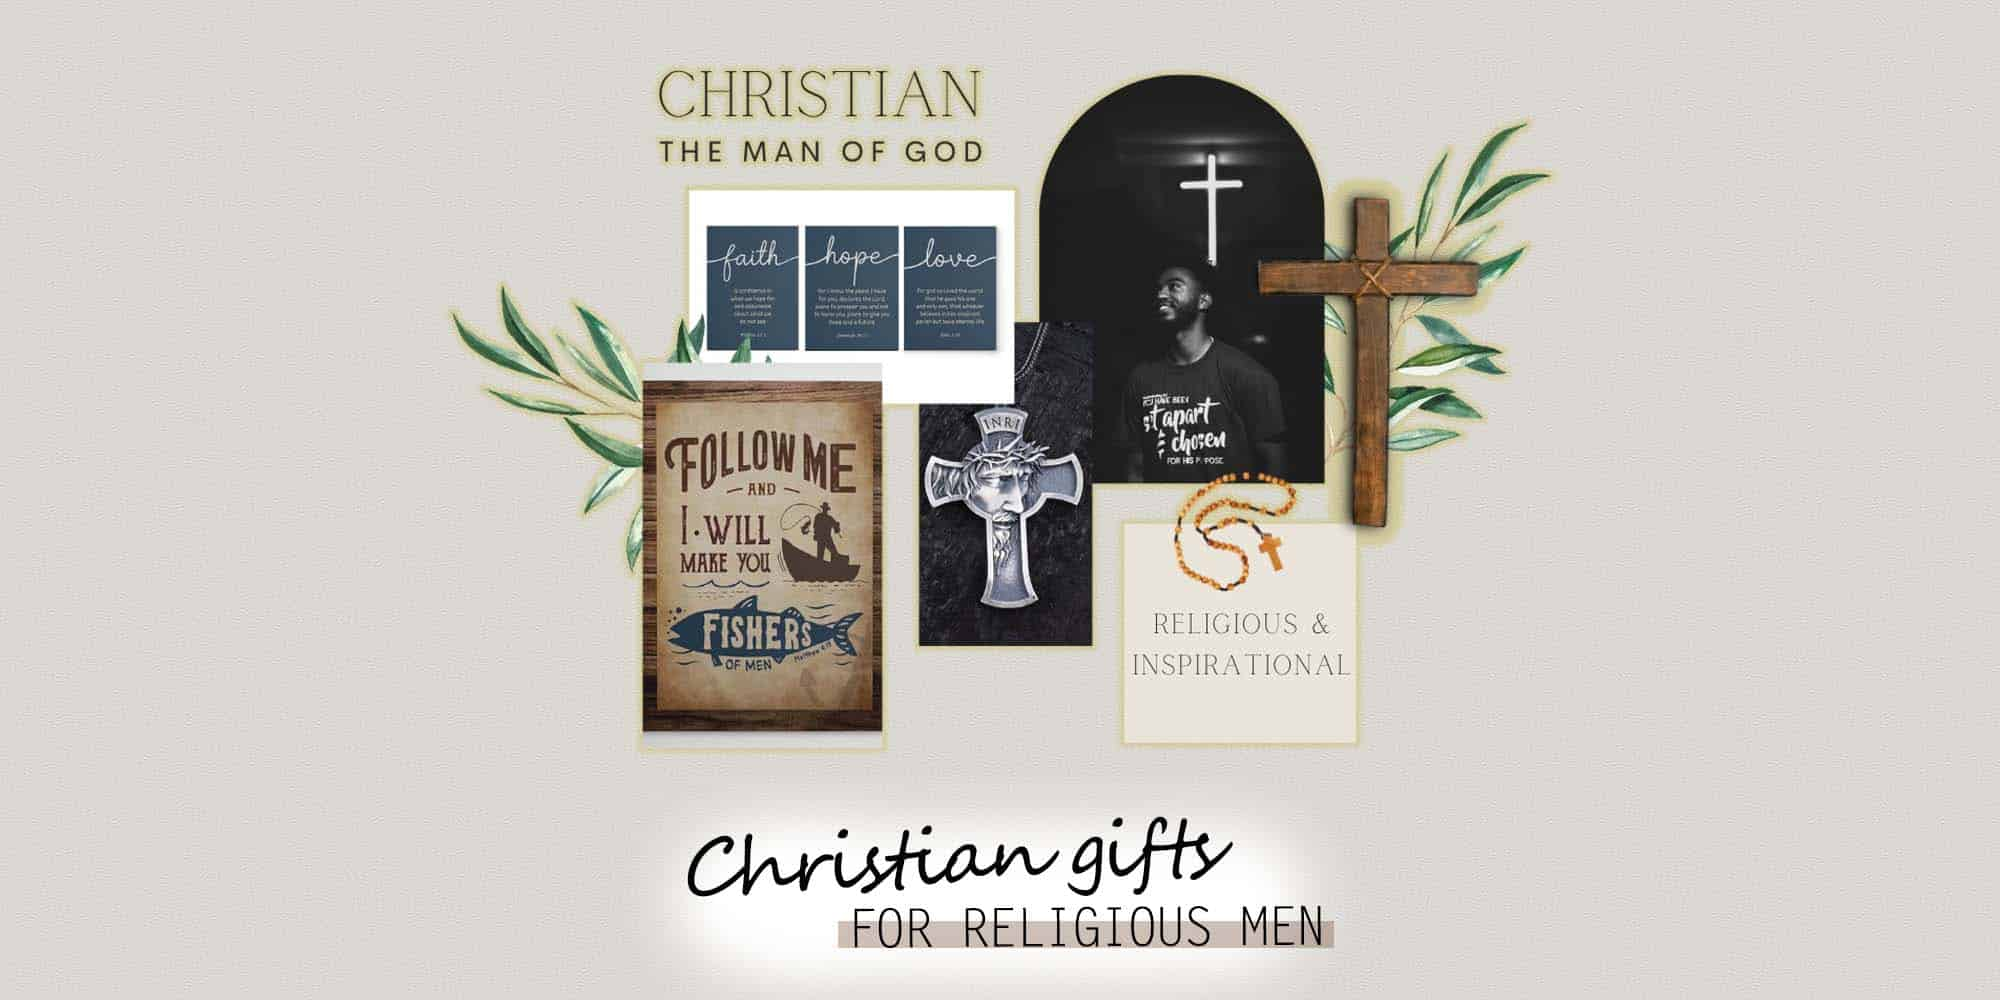 30 Best Christian Gifts for Men: Religious & Inspirational Gifts (2021)